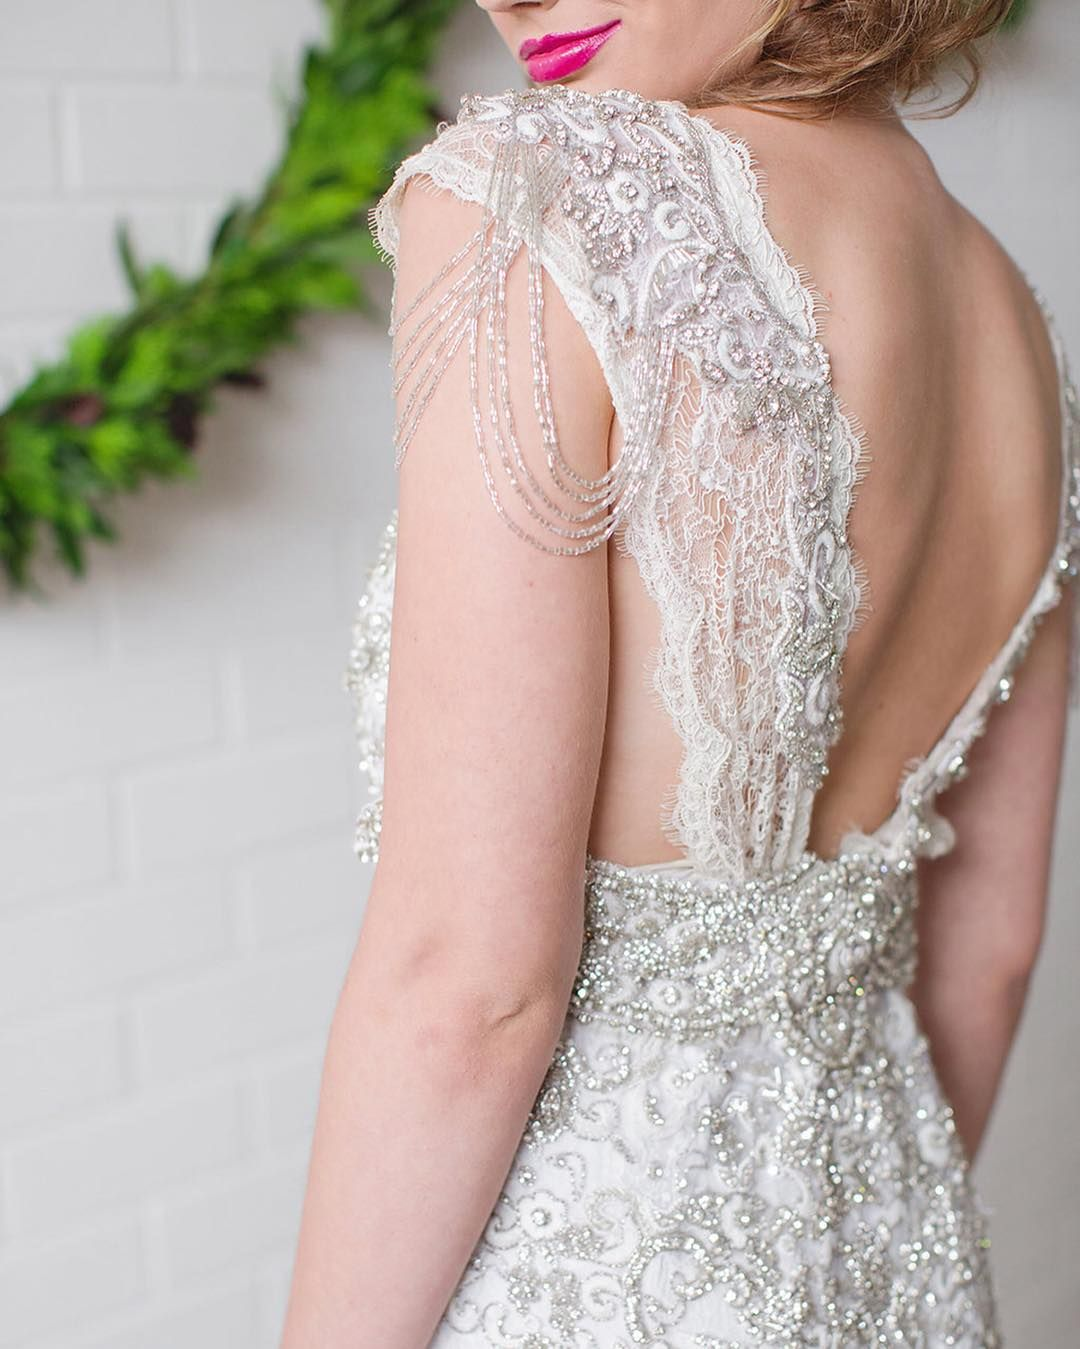 This jewel-drenched #weddinggown! More from our #ValentinesDay ...